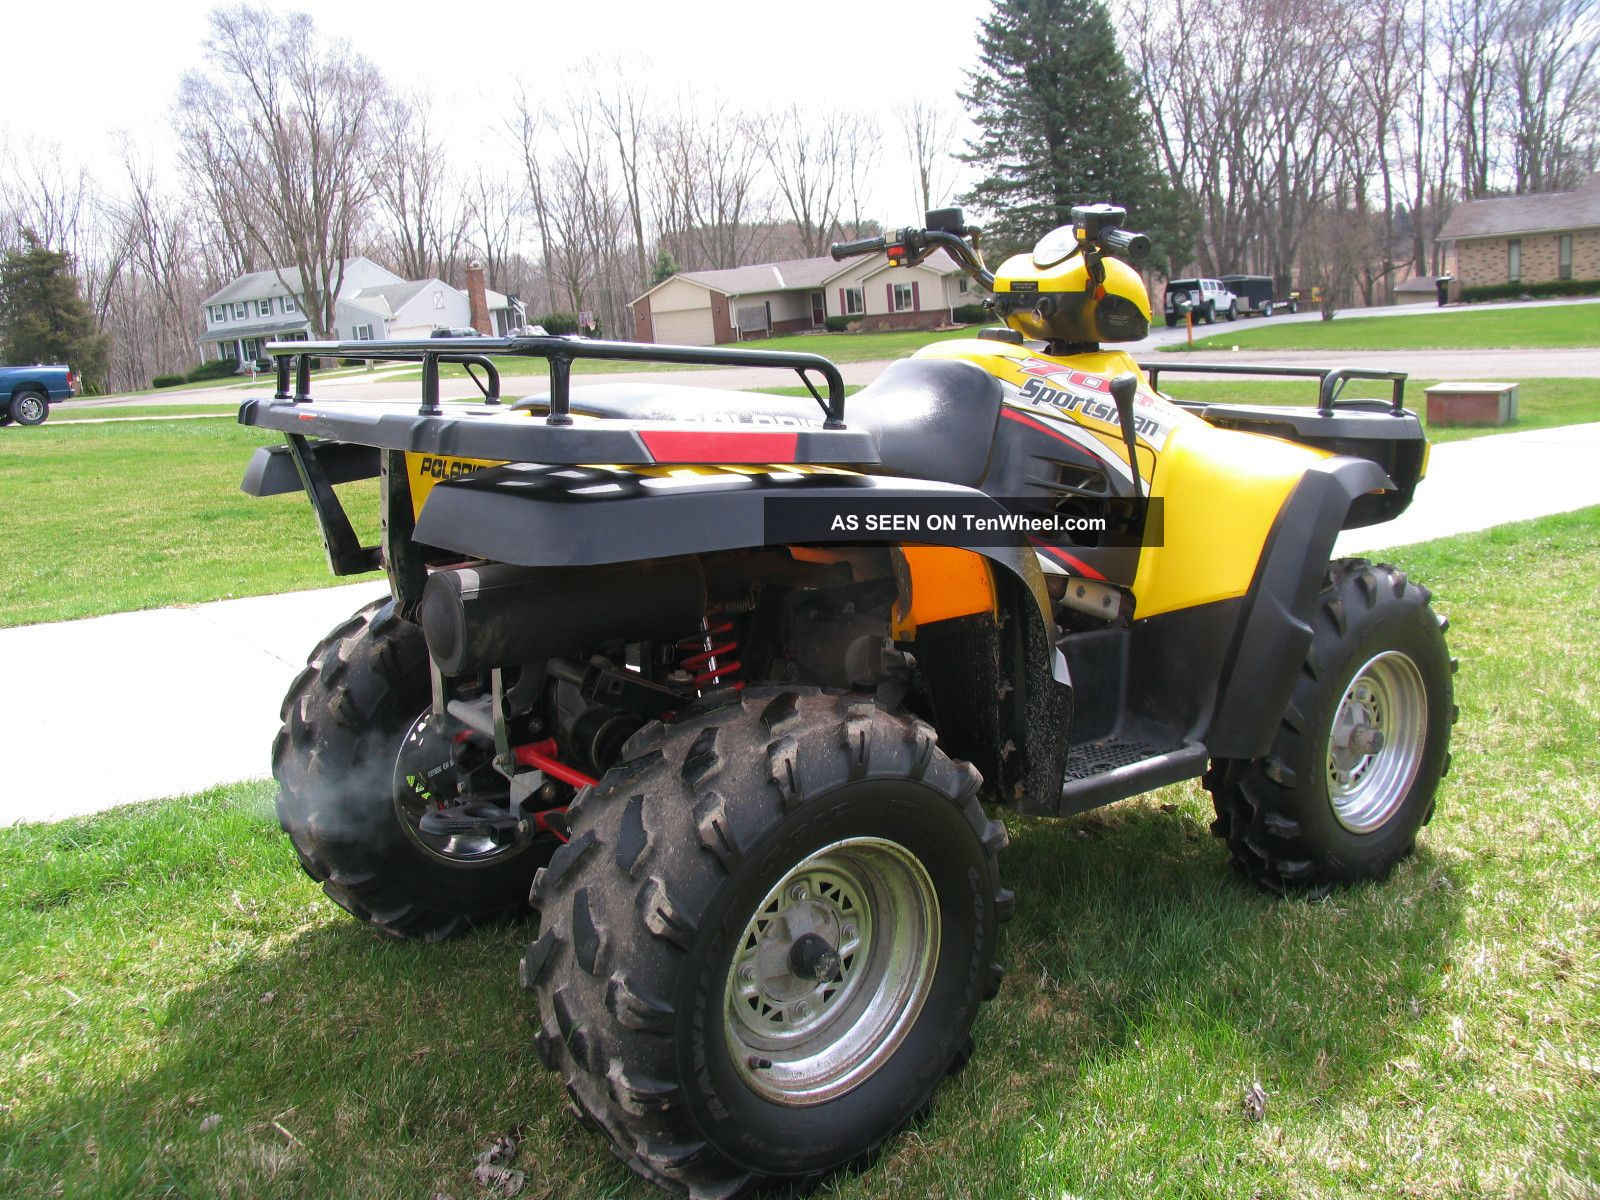 polaris sportsman 700 efi owners manual pdf download. Black Bedroom Furniture Sets. Home Design Ideas